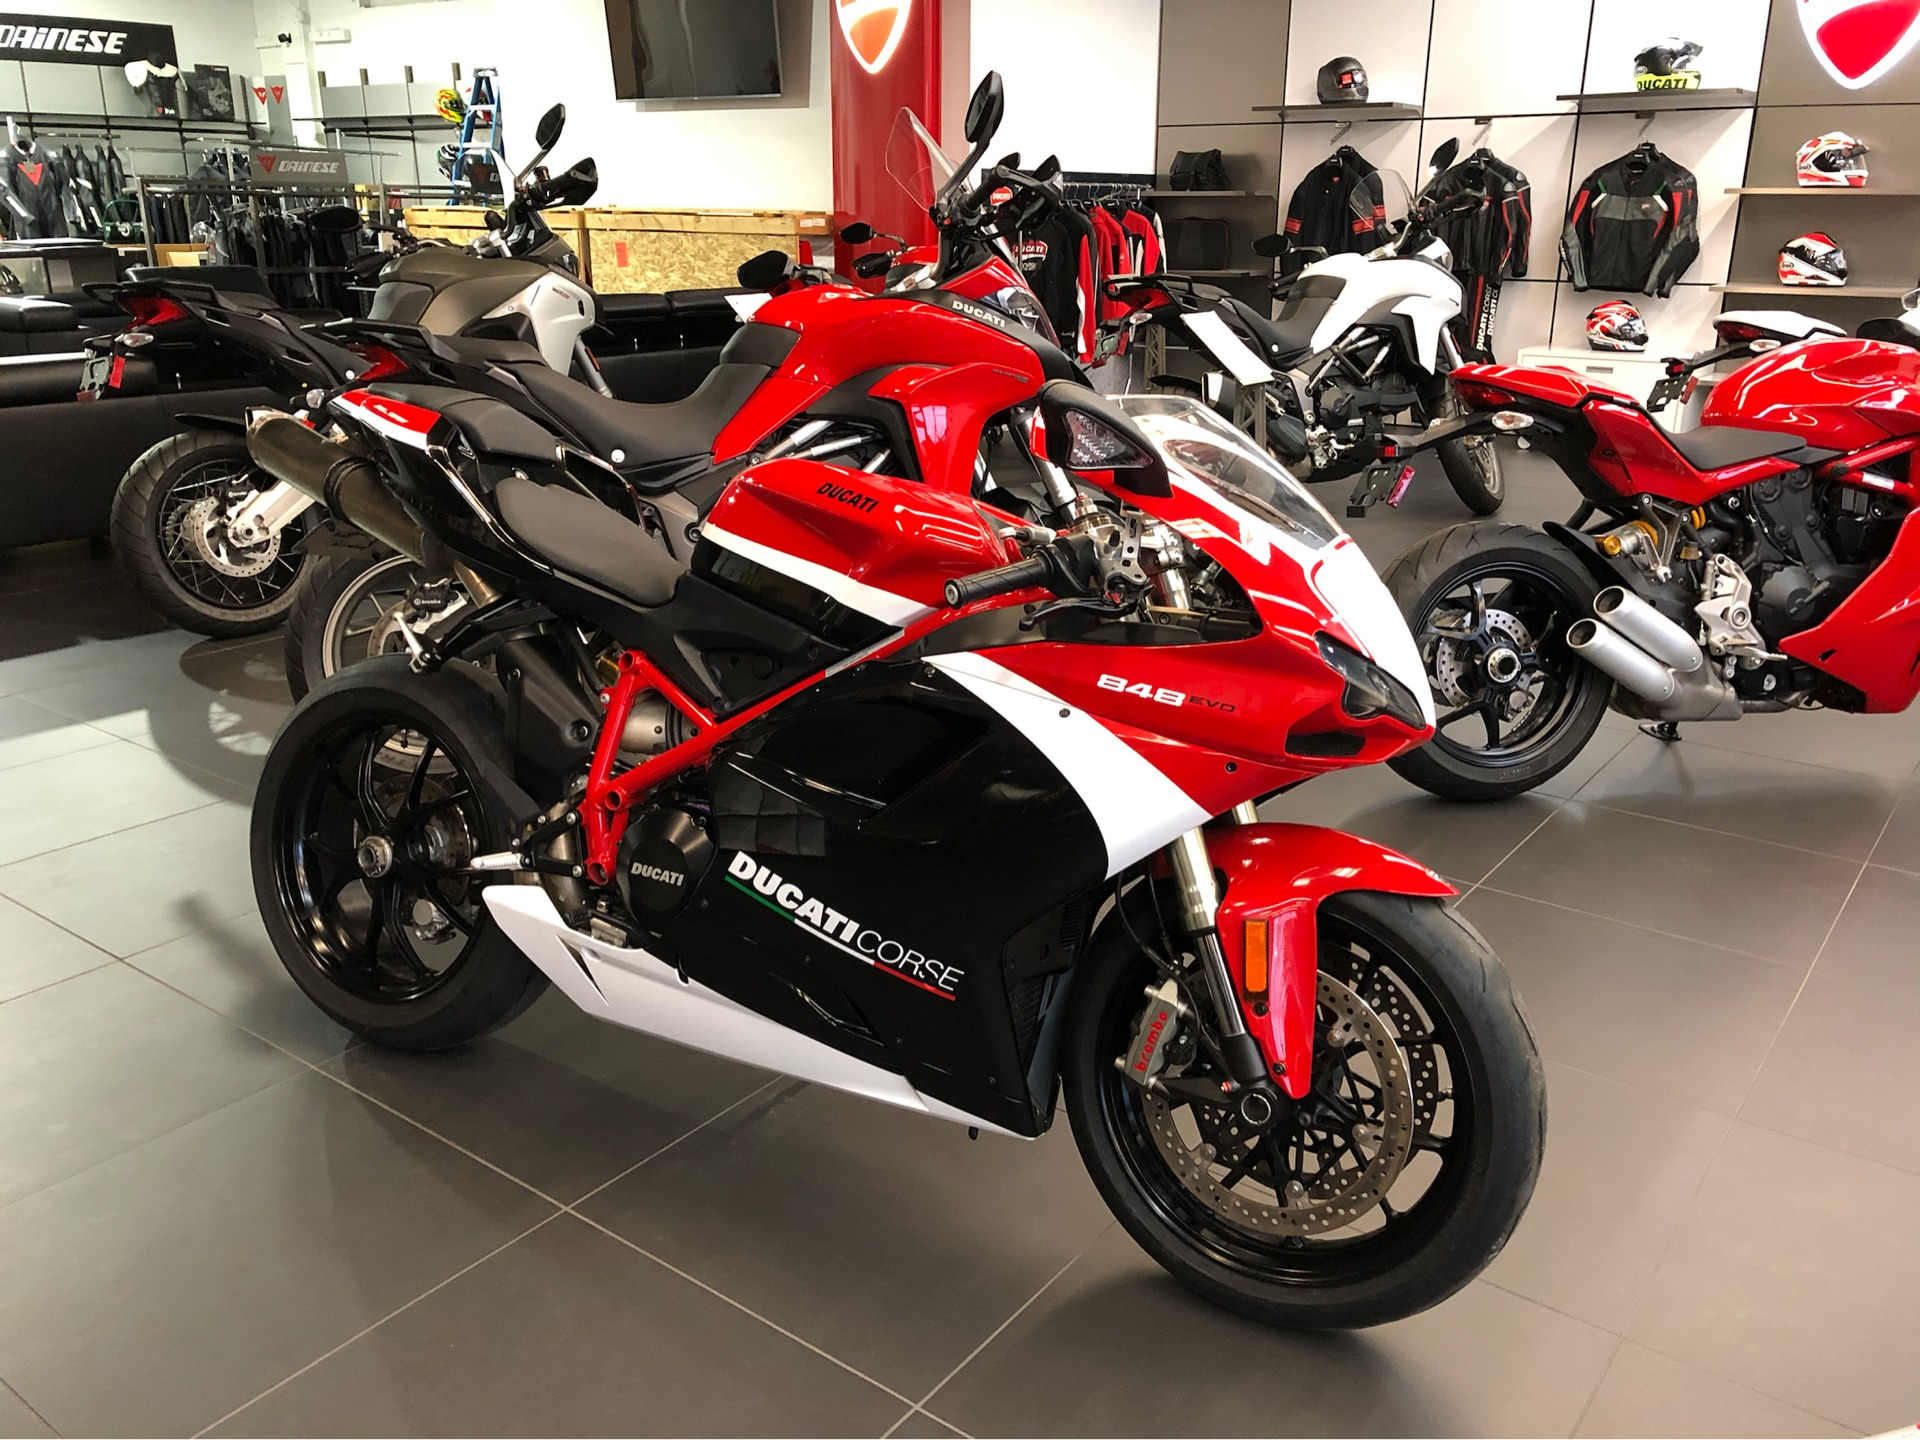 2012 Ducati Superbike 848 EVO Corse SE in Medford, Massachusetts - Photo 3